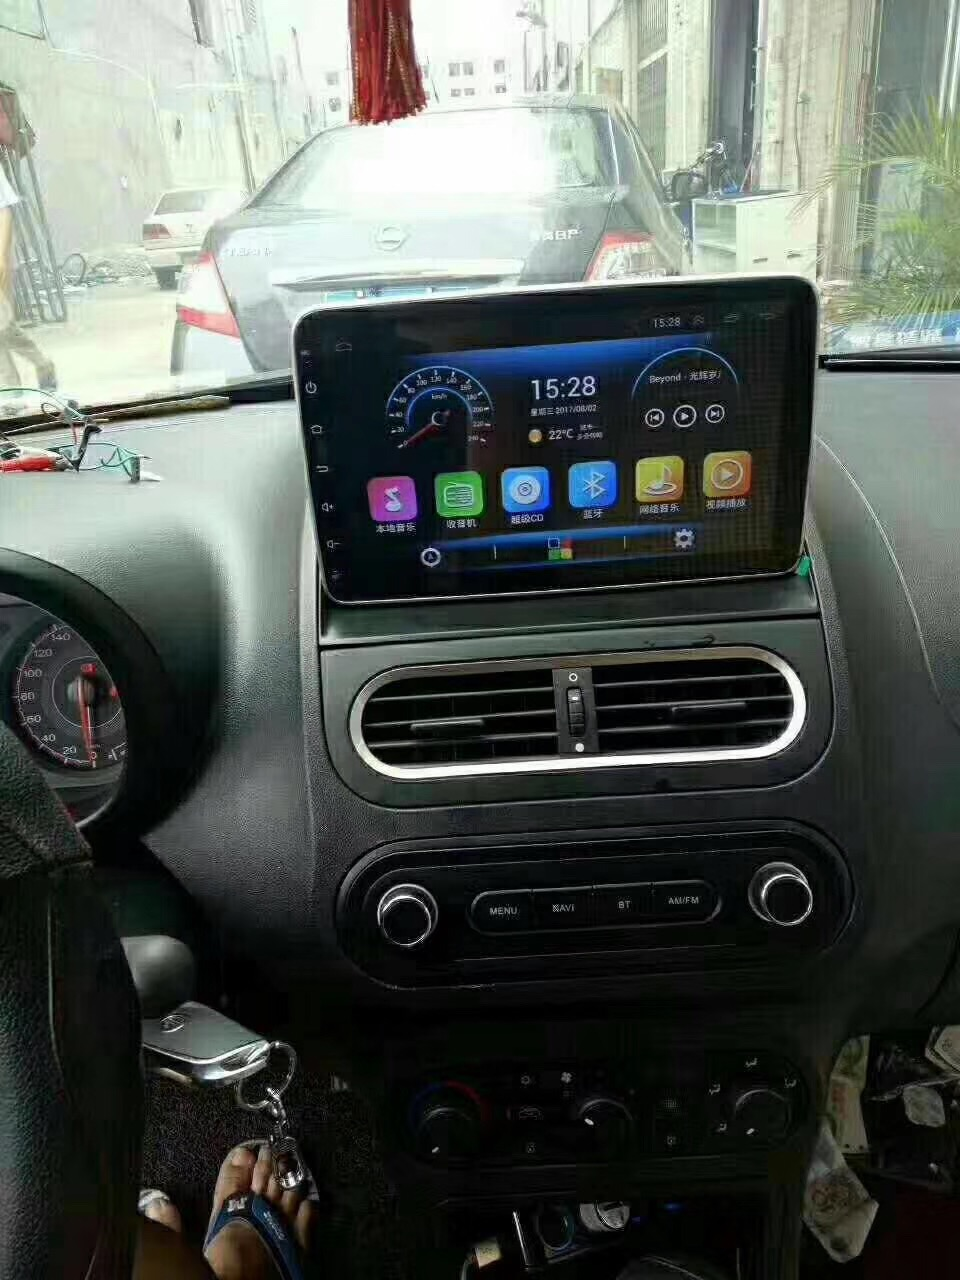 Chogath 10inch Android 8.0 Quad Core Car Multimedia Player Android 8.0 Car Radio Gps Navigation For MG3